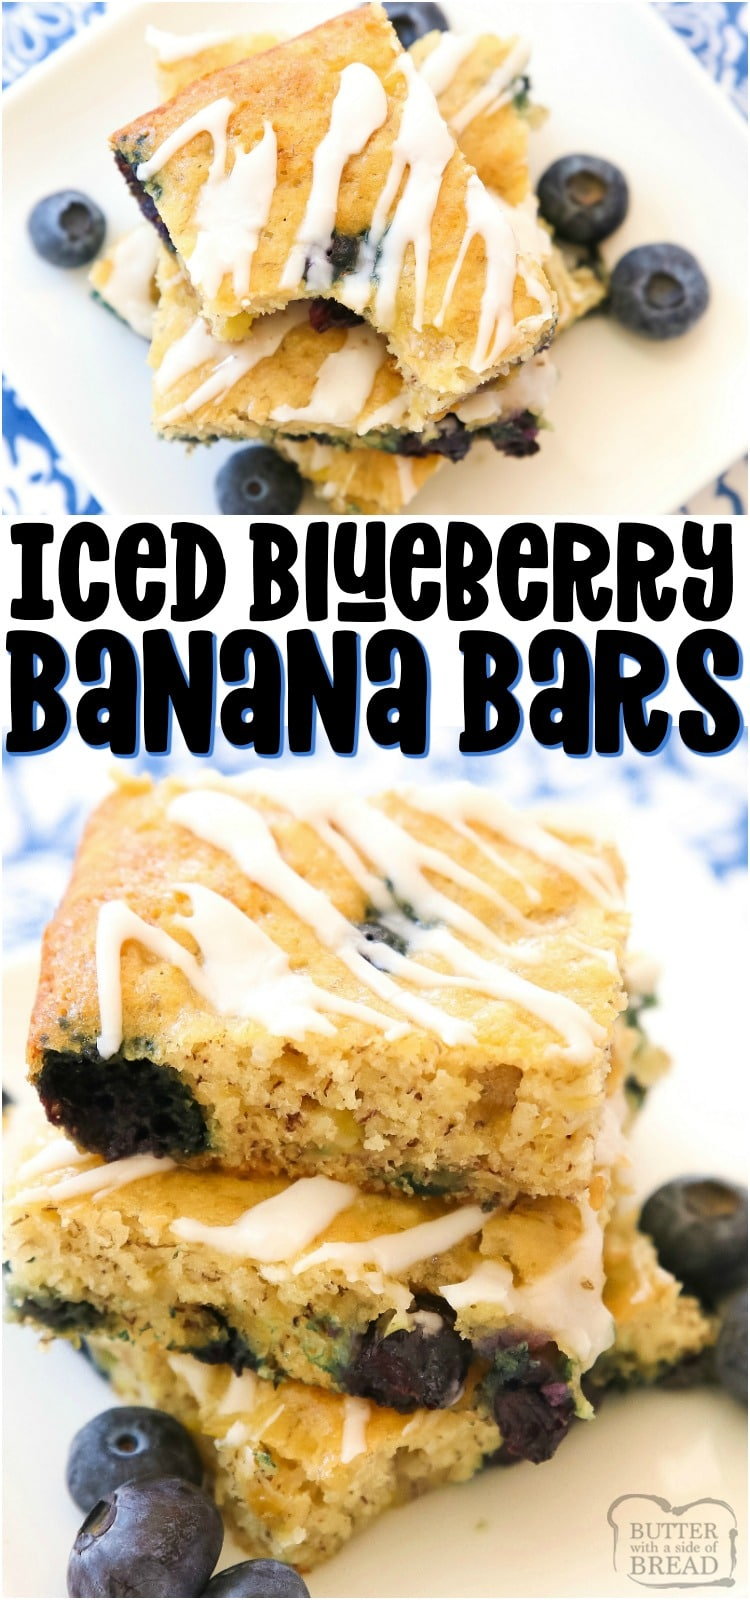 Glazed Blueberry Banana Bars are a simple & delicious ripe banana recipe that's even better than banana bread! Great for breakfast, lunch, snacking, and it even makes a great dessert! #banana #blueberries #bananabars #baking #snack #recipe from BUTTER WITH A SIDE OF BREAD